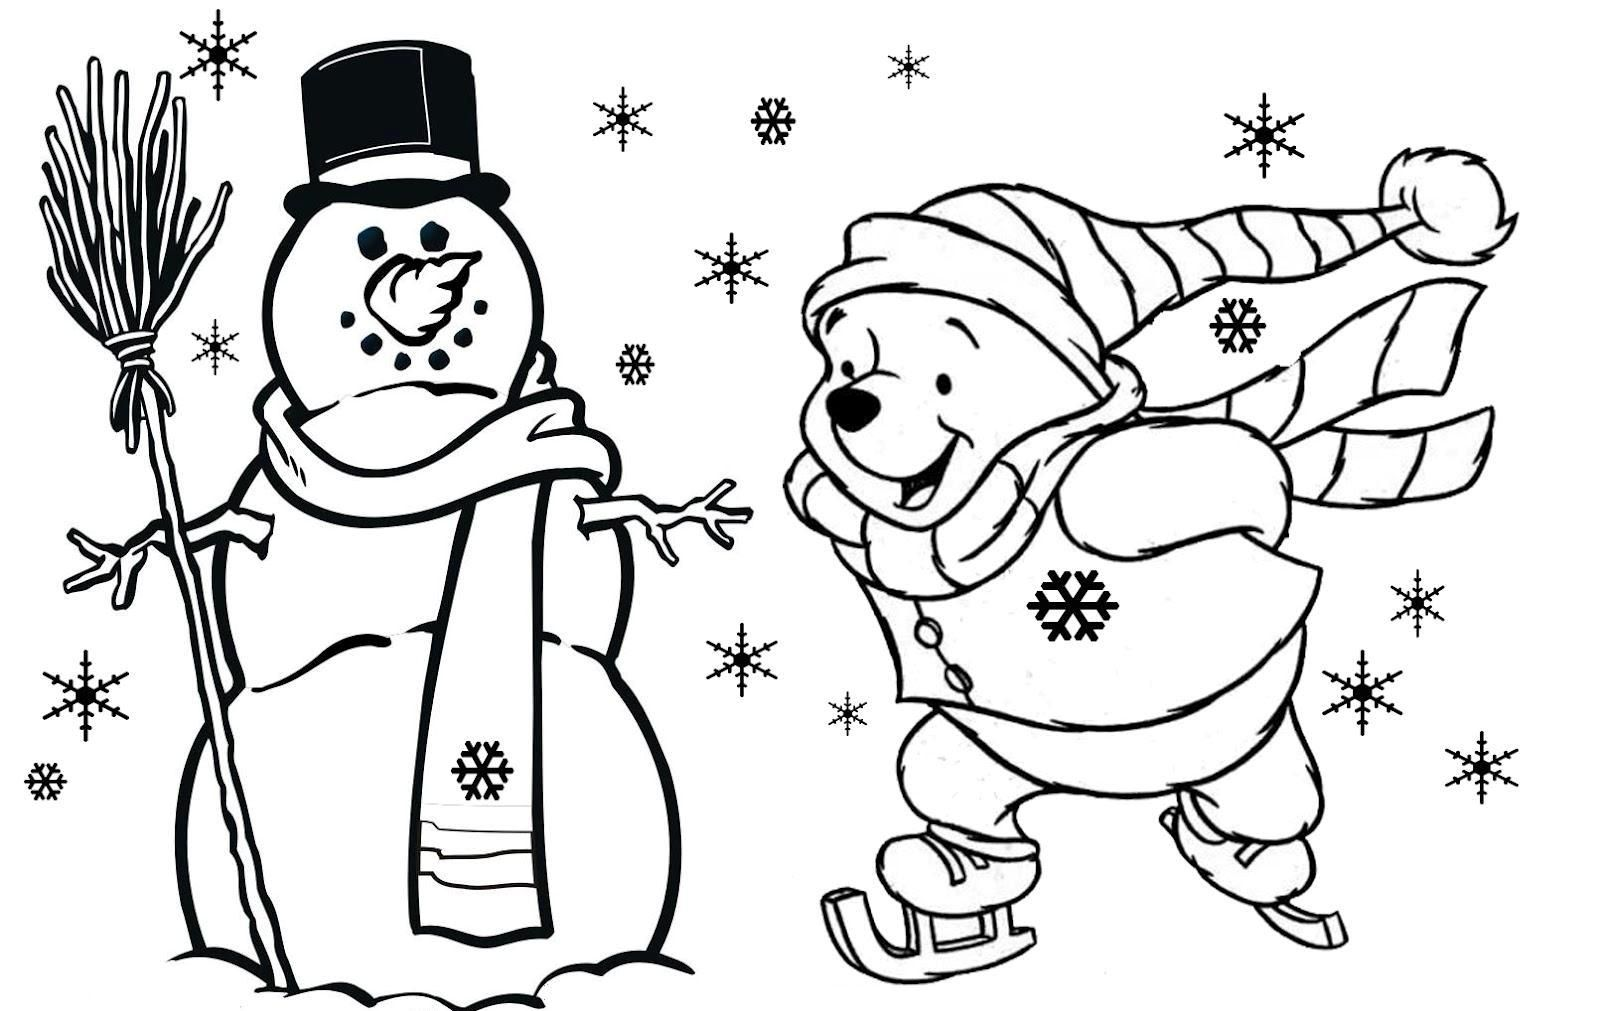 Best Colouring Pictures Ever : Christmas Coloring Pages To Print Free Best Quotes & Wishes Ever Coloring Home